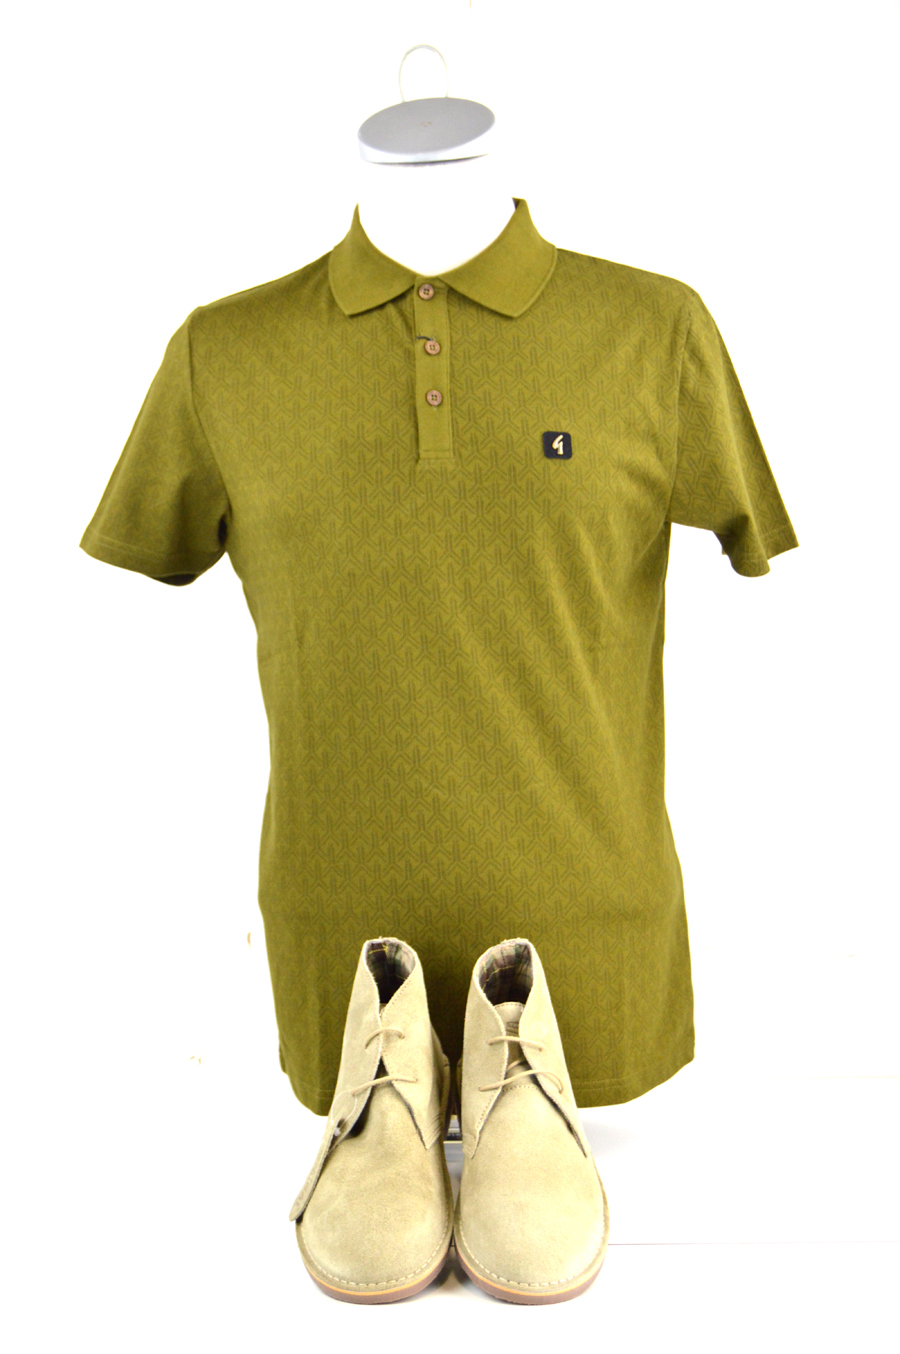 04 mod shoes desert boots and gabicci polo top